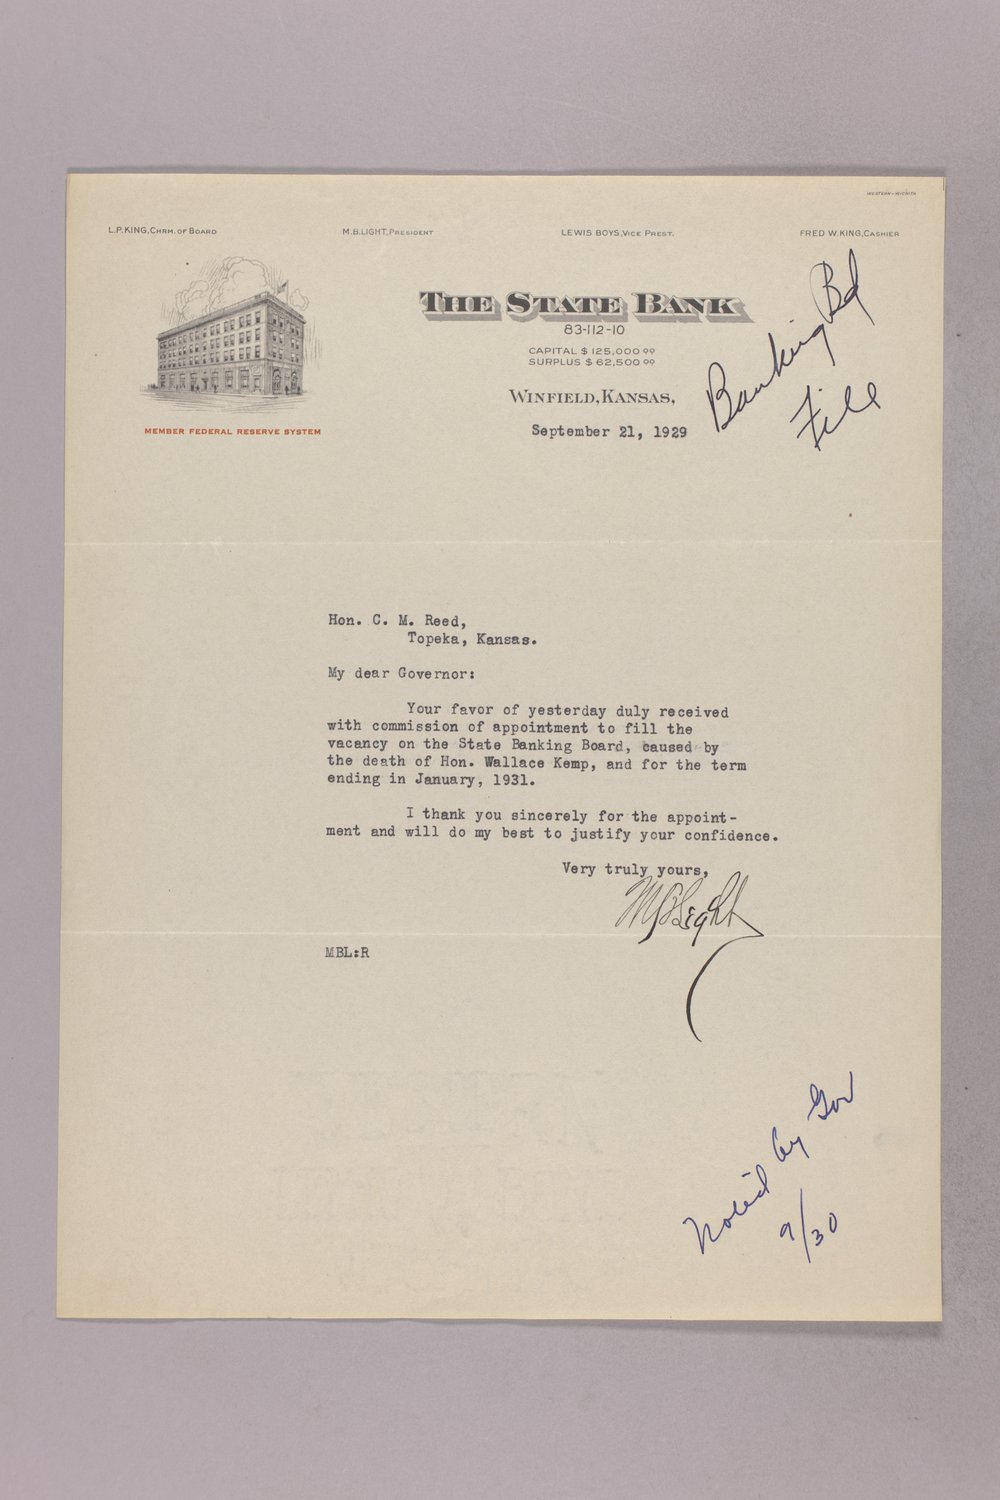 Governor Clyde M. Reed correspondence, Banking Board - 2